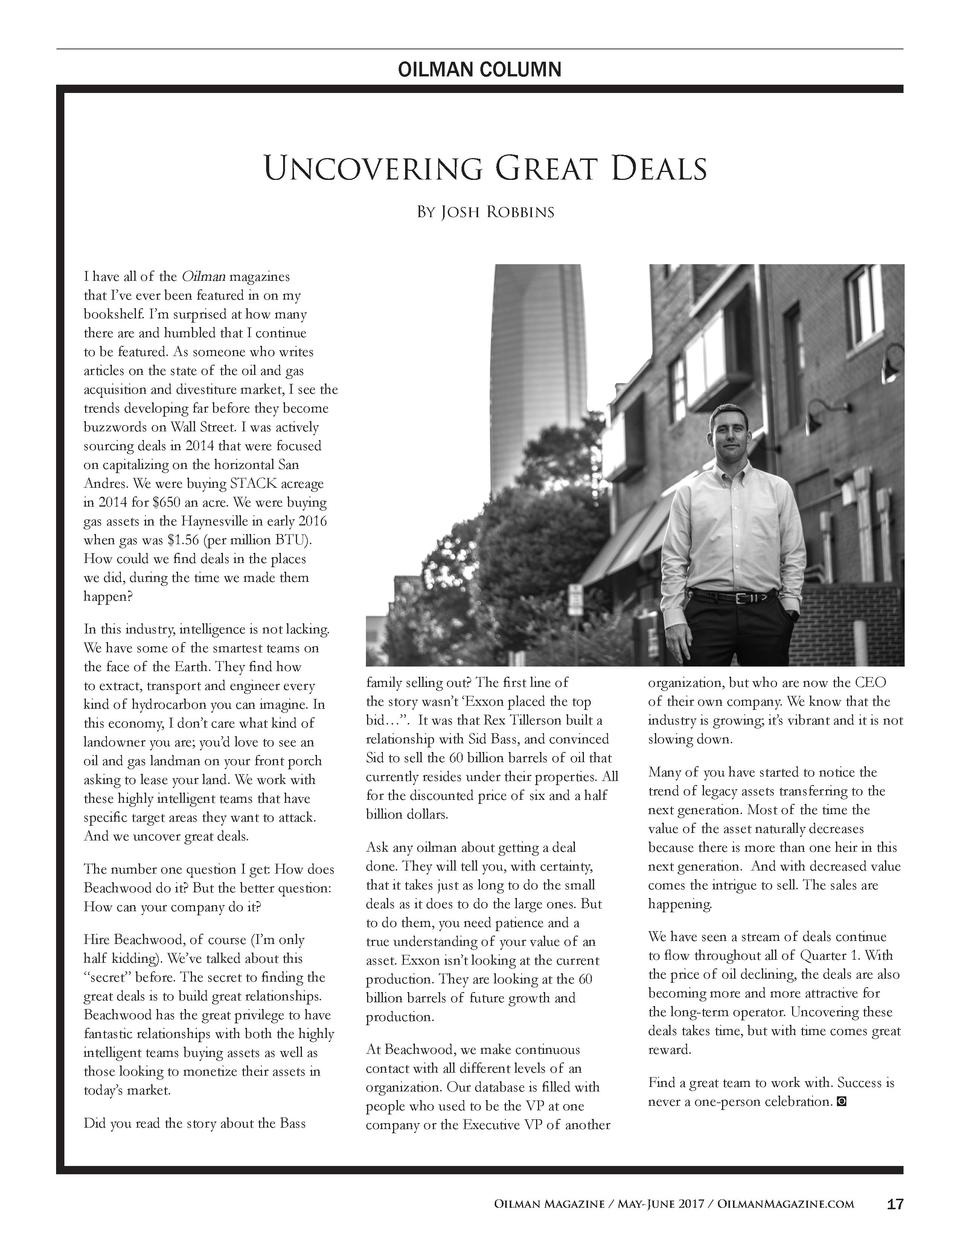 OILMAN COLUMN  Uncovering Great Deals By Josh Robbins  I have all of the Oilman magazines that I   ve ever been featured i...